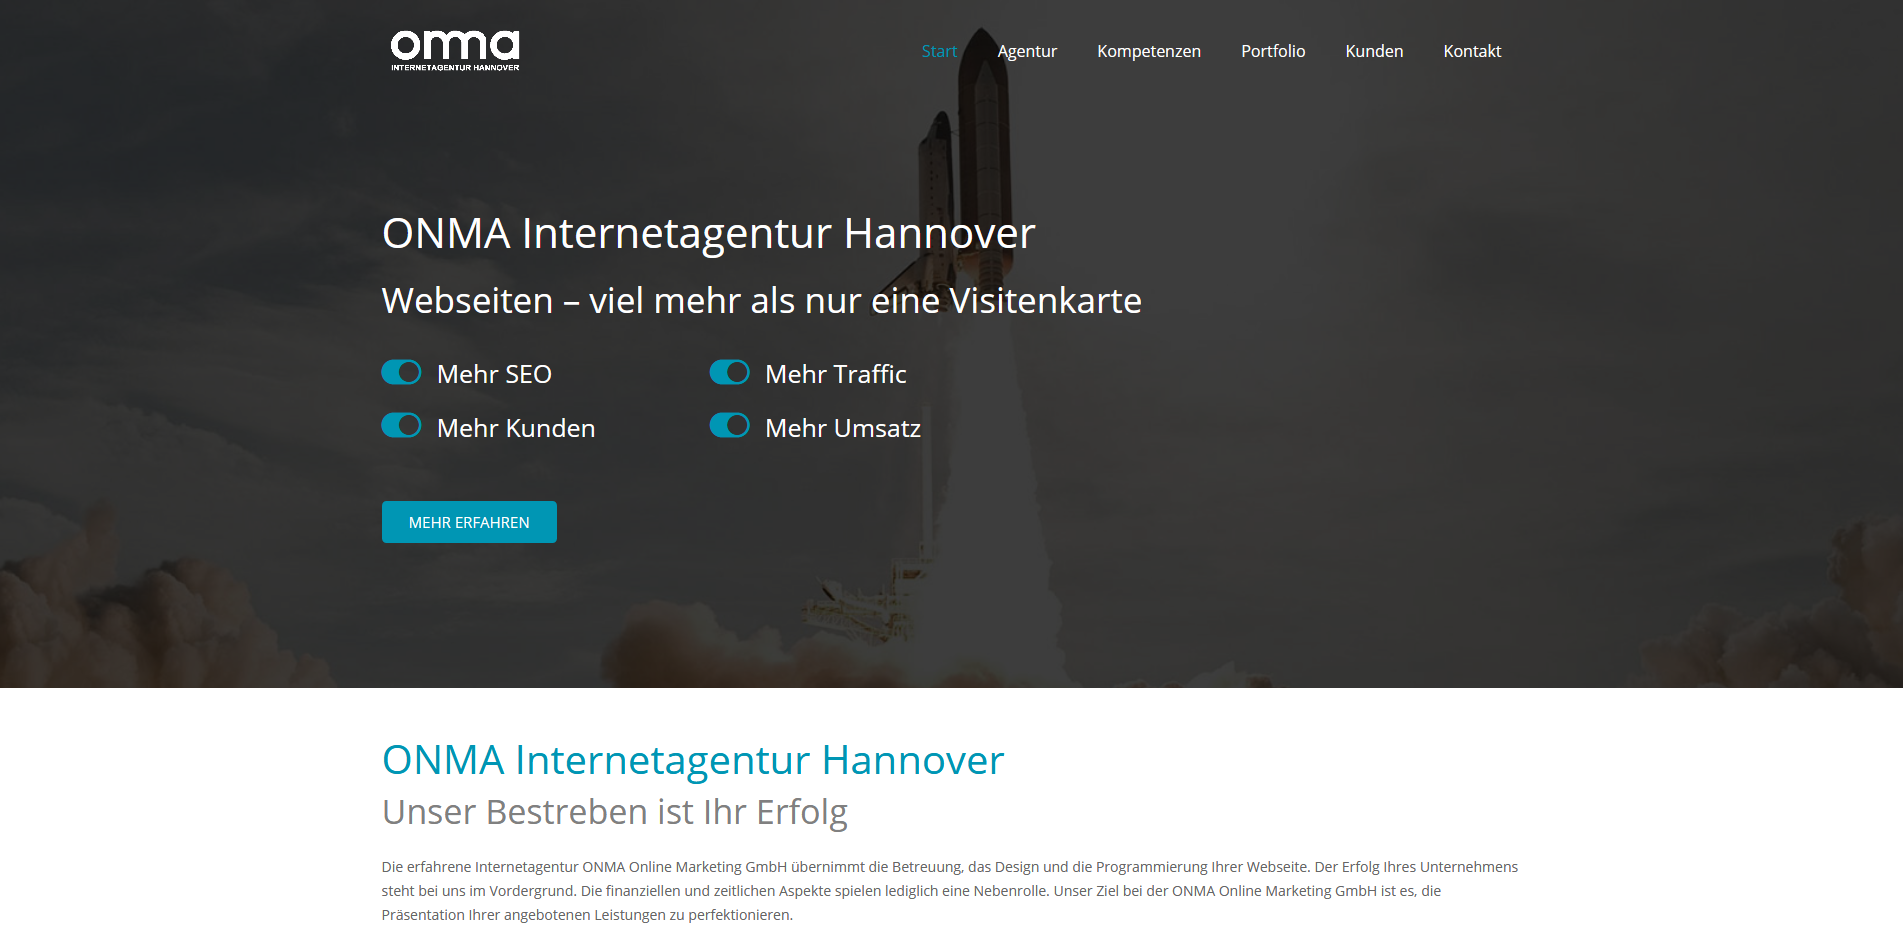 Internetagentur ONMA Online Marketing GmbH